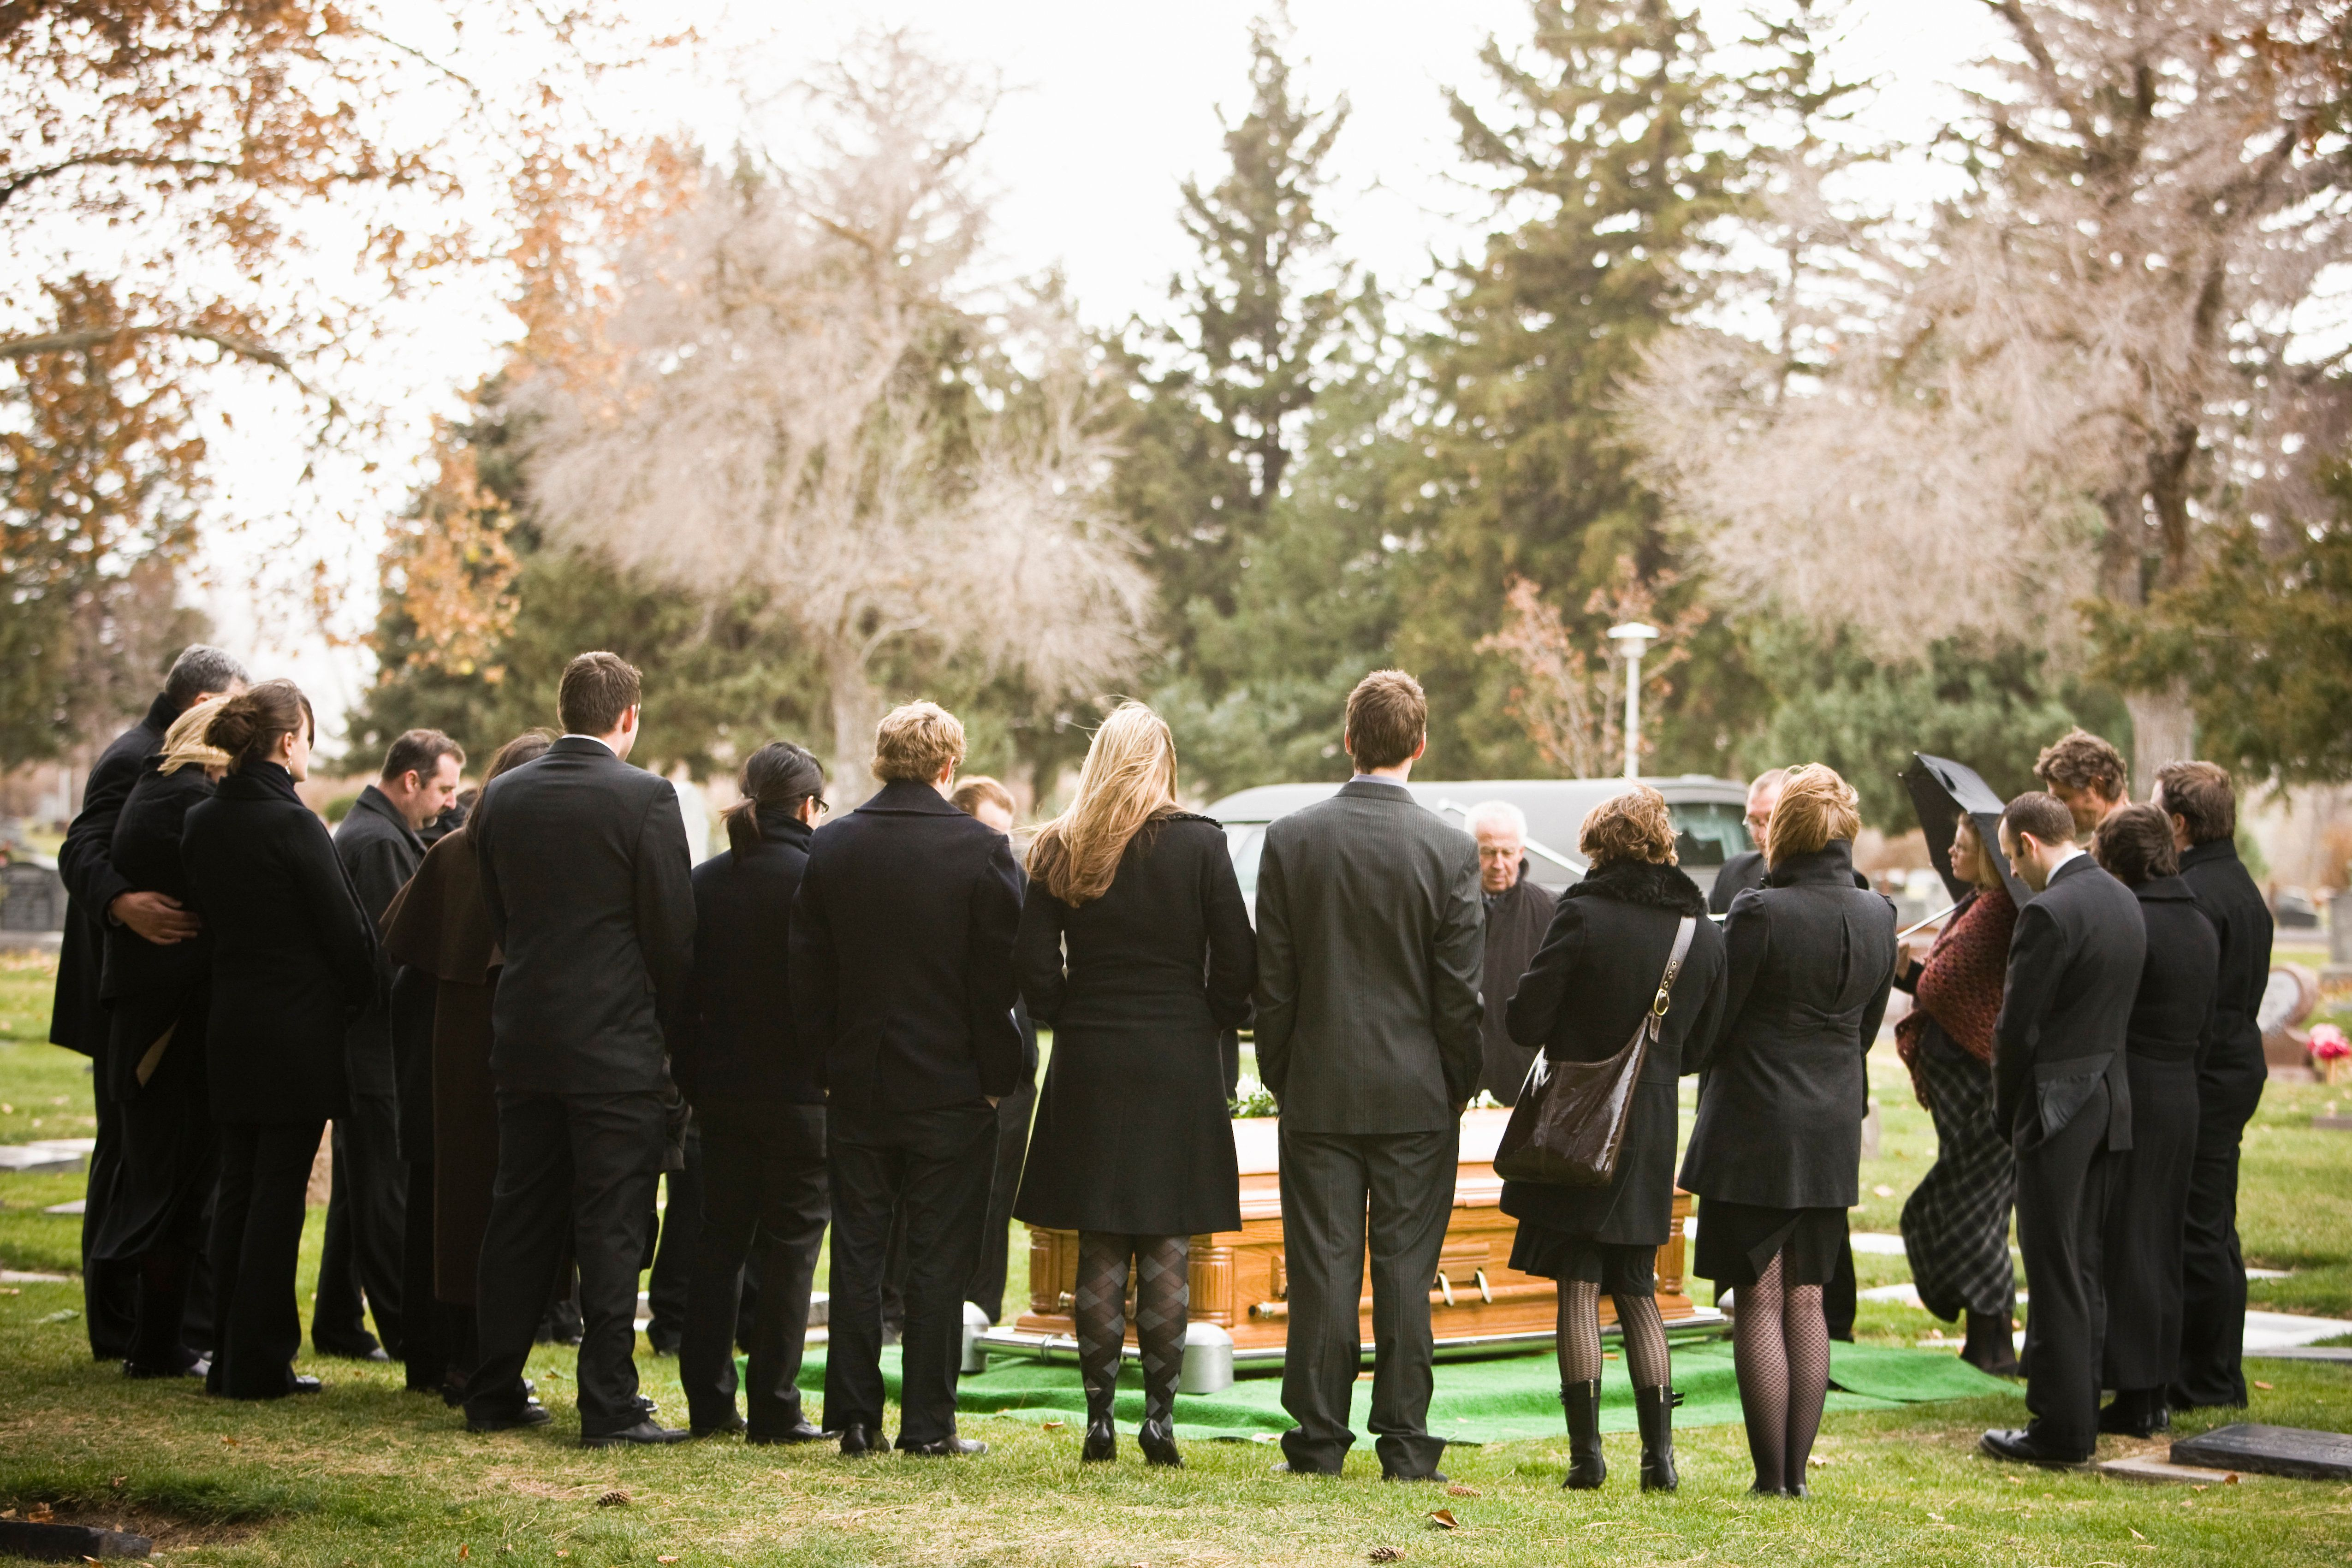 What to wear to a funeral memorial service